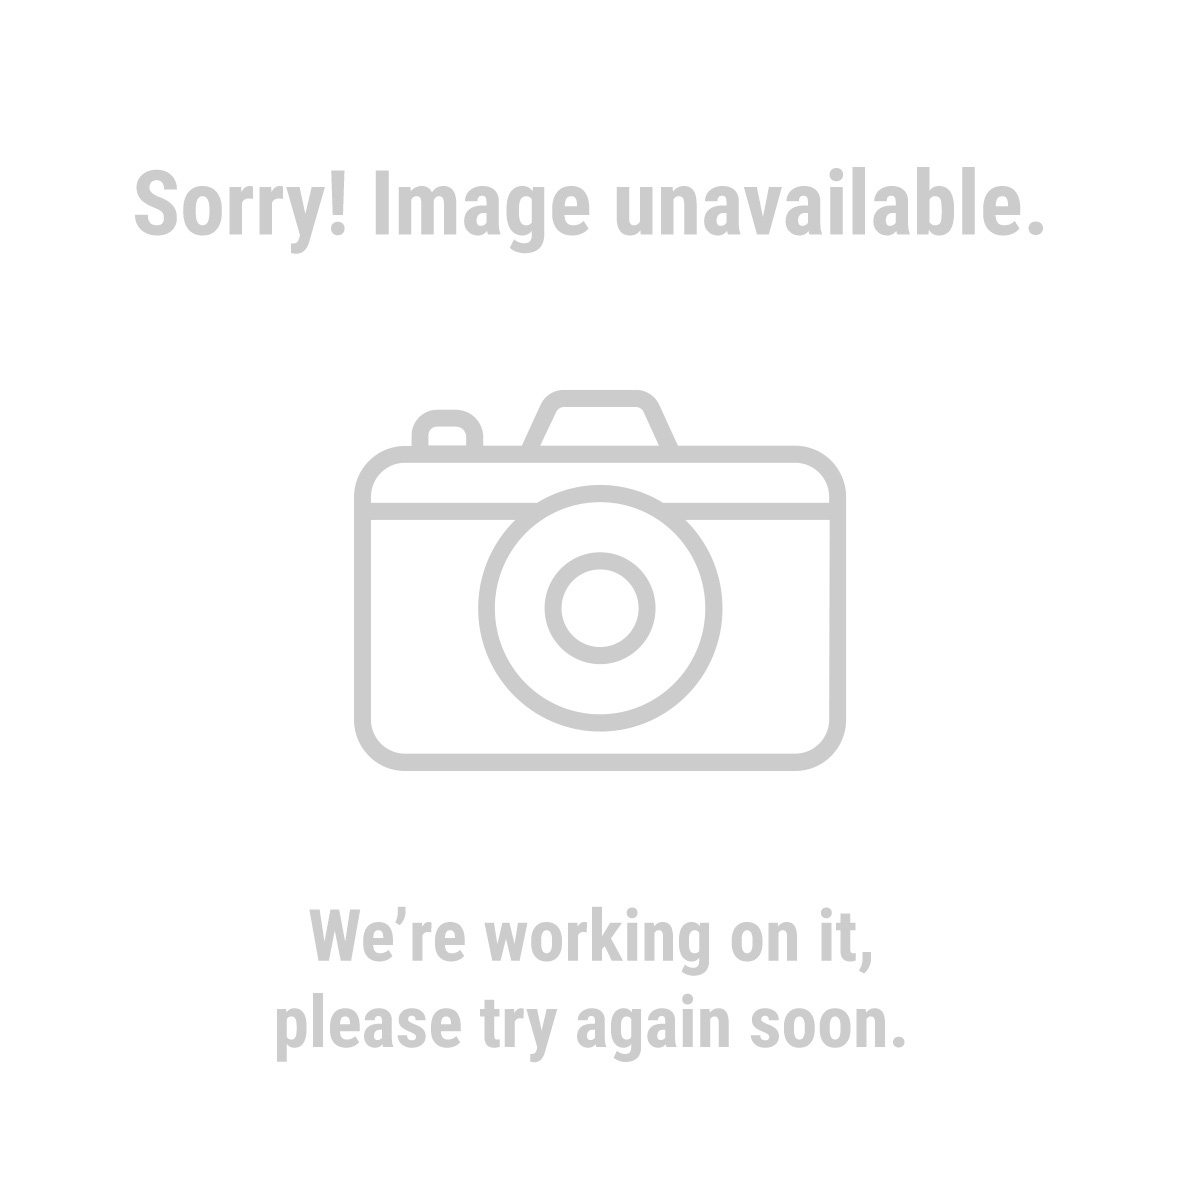 94829 Stainless Steel 4 Piece Stock Pot Set